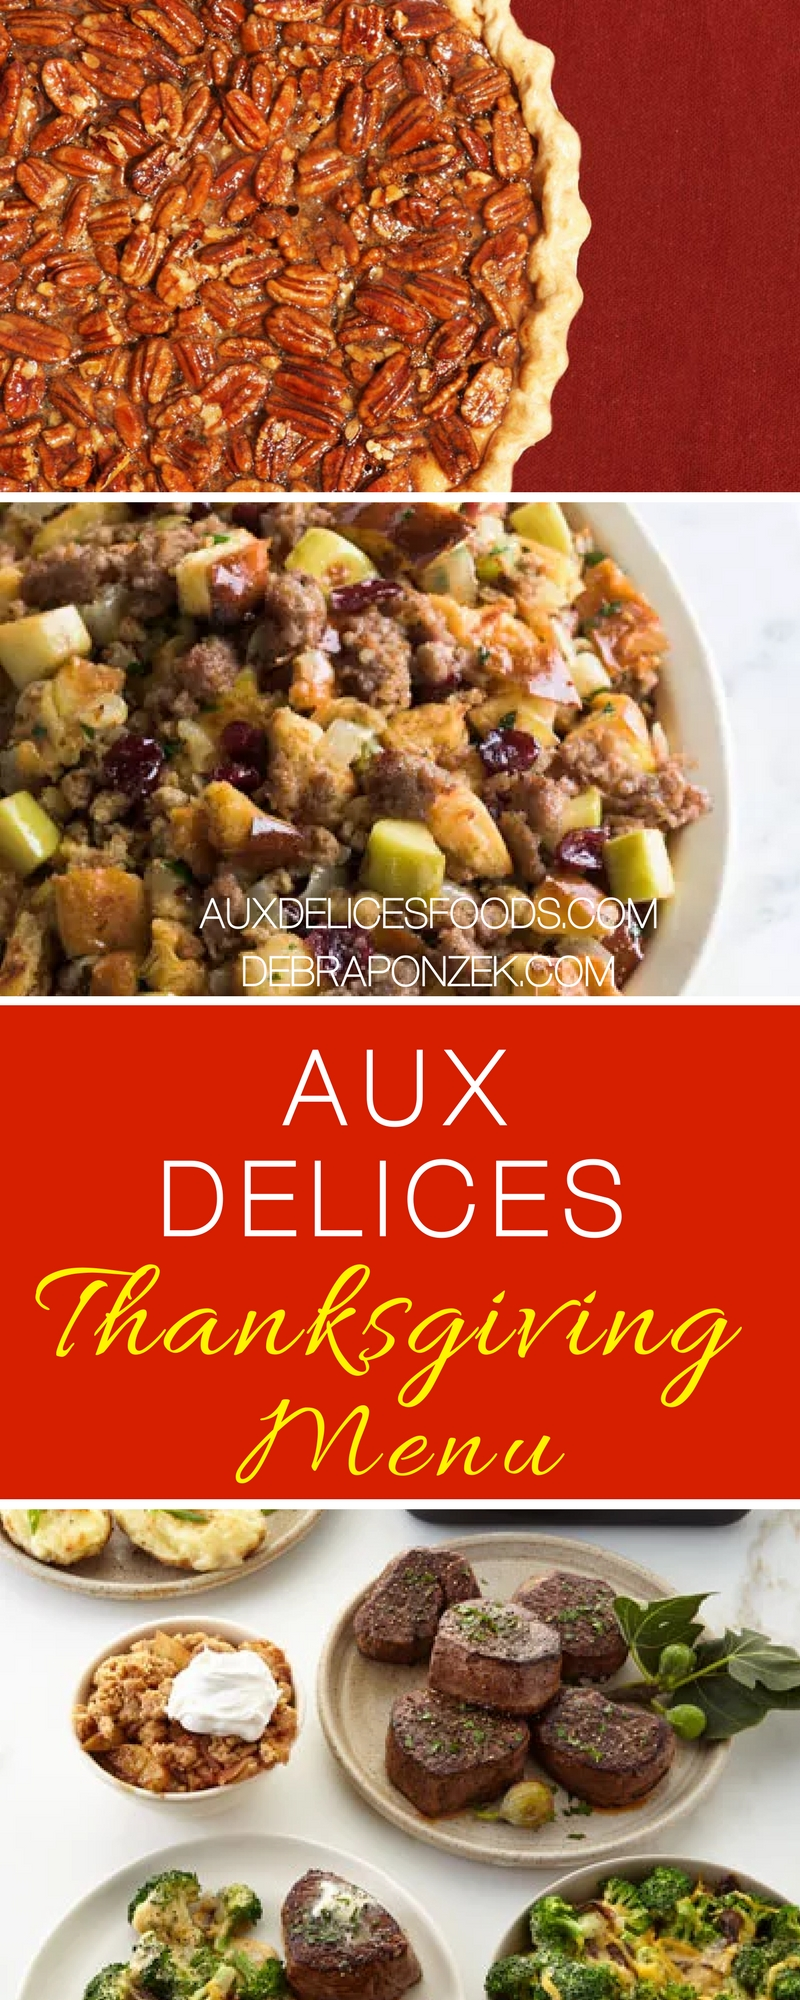 Our Aux Delices Foods Thanksgiving Menu for 2017 is filled with delicious dishes to make your holiday meal the best it can be! Aux Delices Foods Recipes | Thanksgiving Recipes | Thanksgiving Side Dishes | Thanksgiving Desserts | Thanksgiving Main Course Ideas | Thanksgiving Menu Ideas